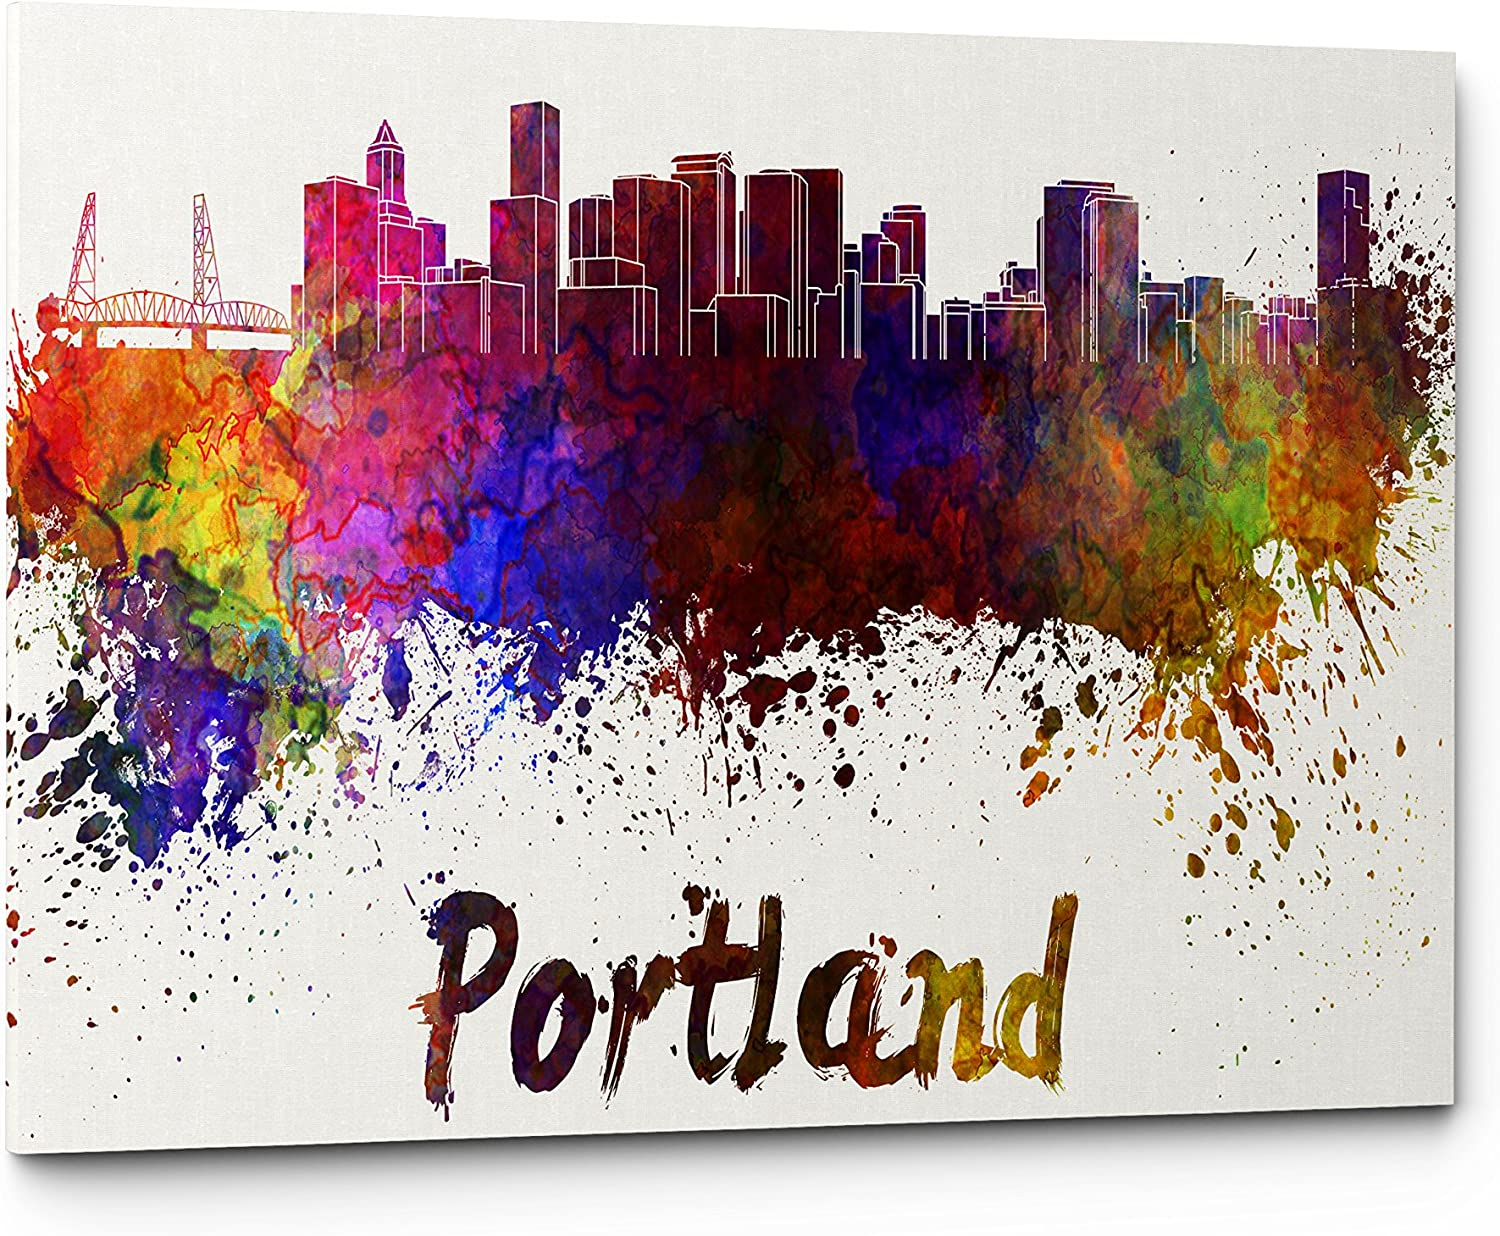 Qutenest Watercolor Portland City Skyline Canvas Wall Art Prints, Modern Abstract Cityscape Wall Art Print, Gallery Wrapped Giclee Canvas Art, Home Decor, Office Decor - Ready to Hang (Portland)